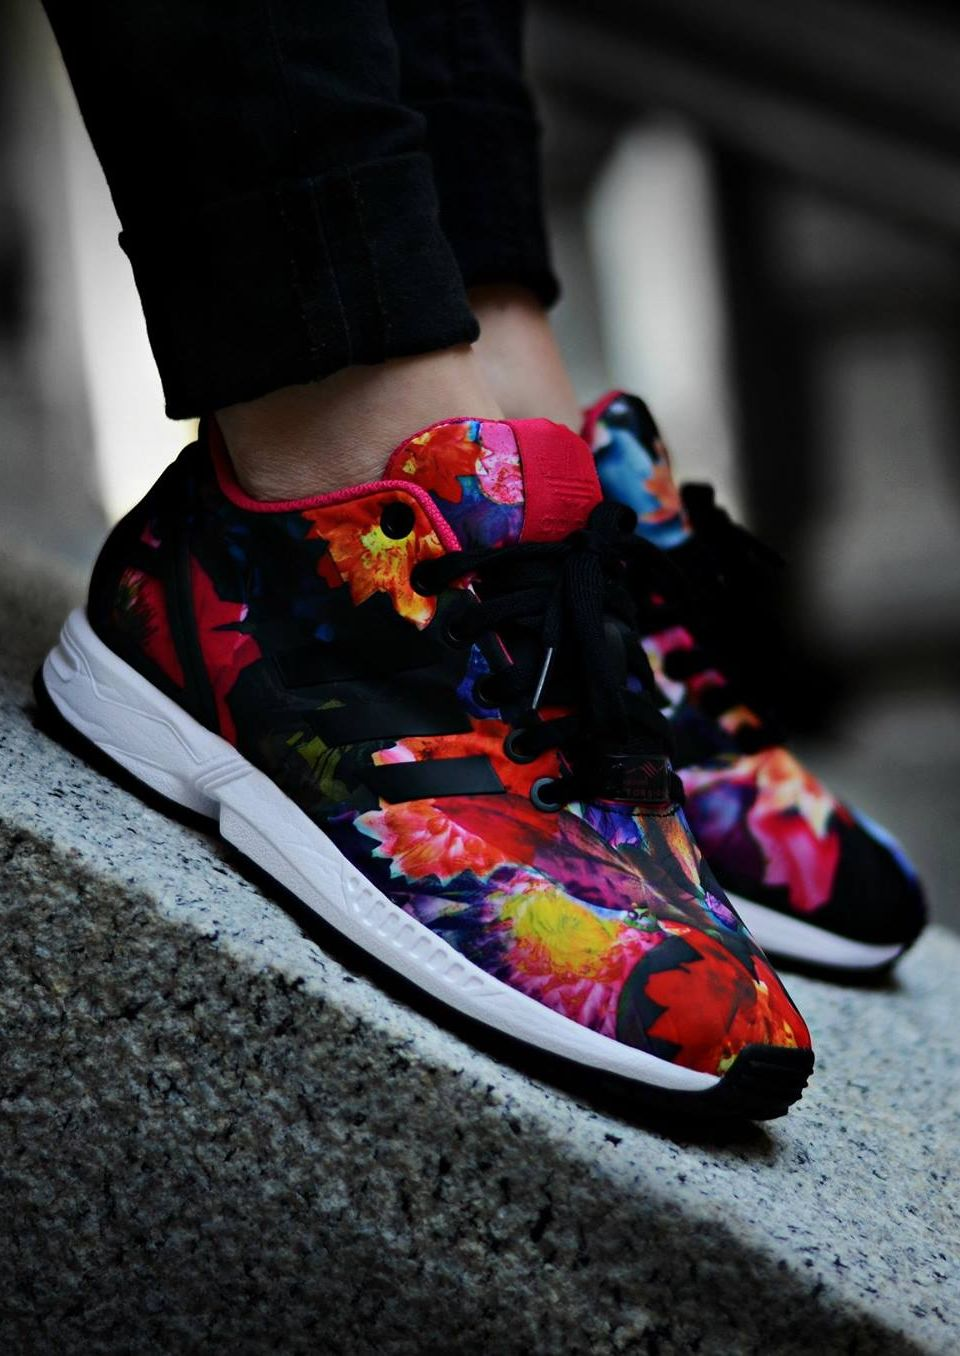 2d98c2dd31787 Adidas Zx Flux Floral via SneakersAddictDailyPics  Reshoevn8r  sneakers   sneakerhead  shoes  workout  fitness  lifestyle  shoecleaner  reshoevn8r